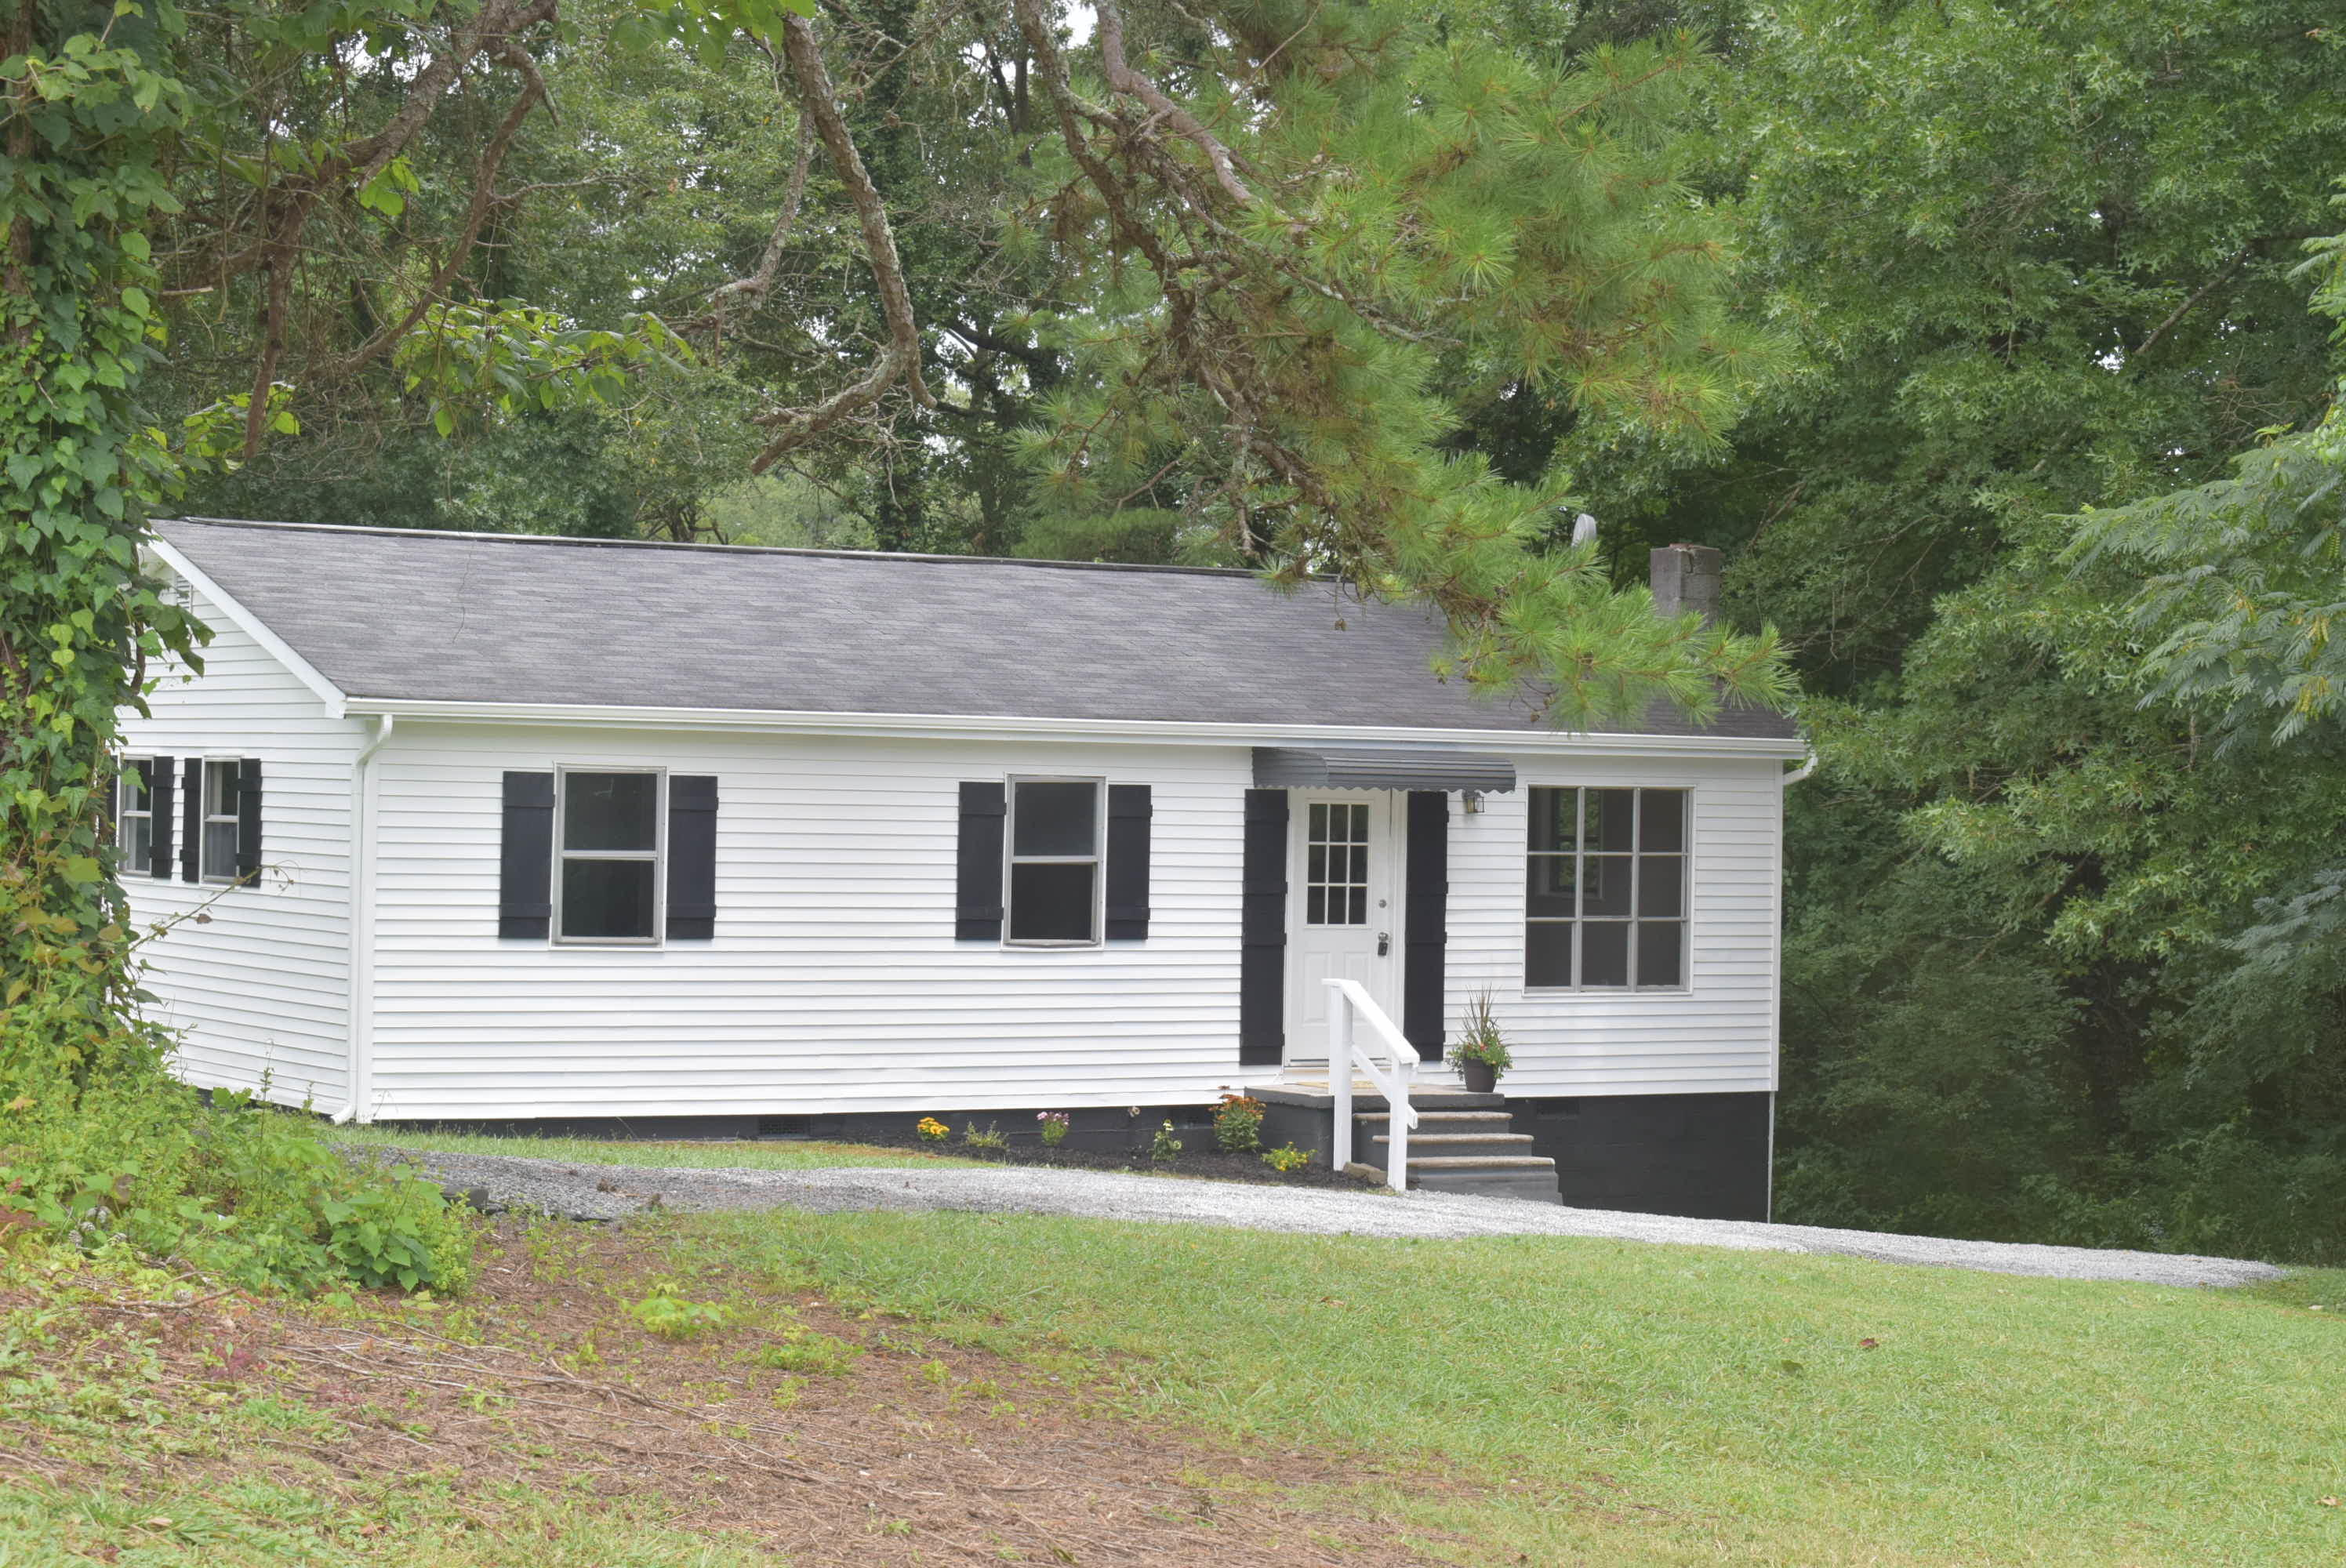 407 Broad, Clinton, Tennessee, United States 37716, 3 Bedrooms Bedrooms, ,1 BathroomBathrooms,Single Family,For Sale,Broad,1050669